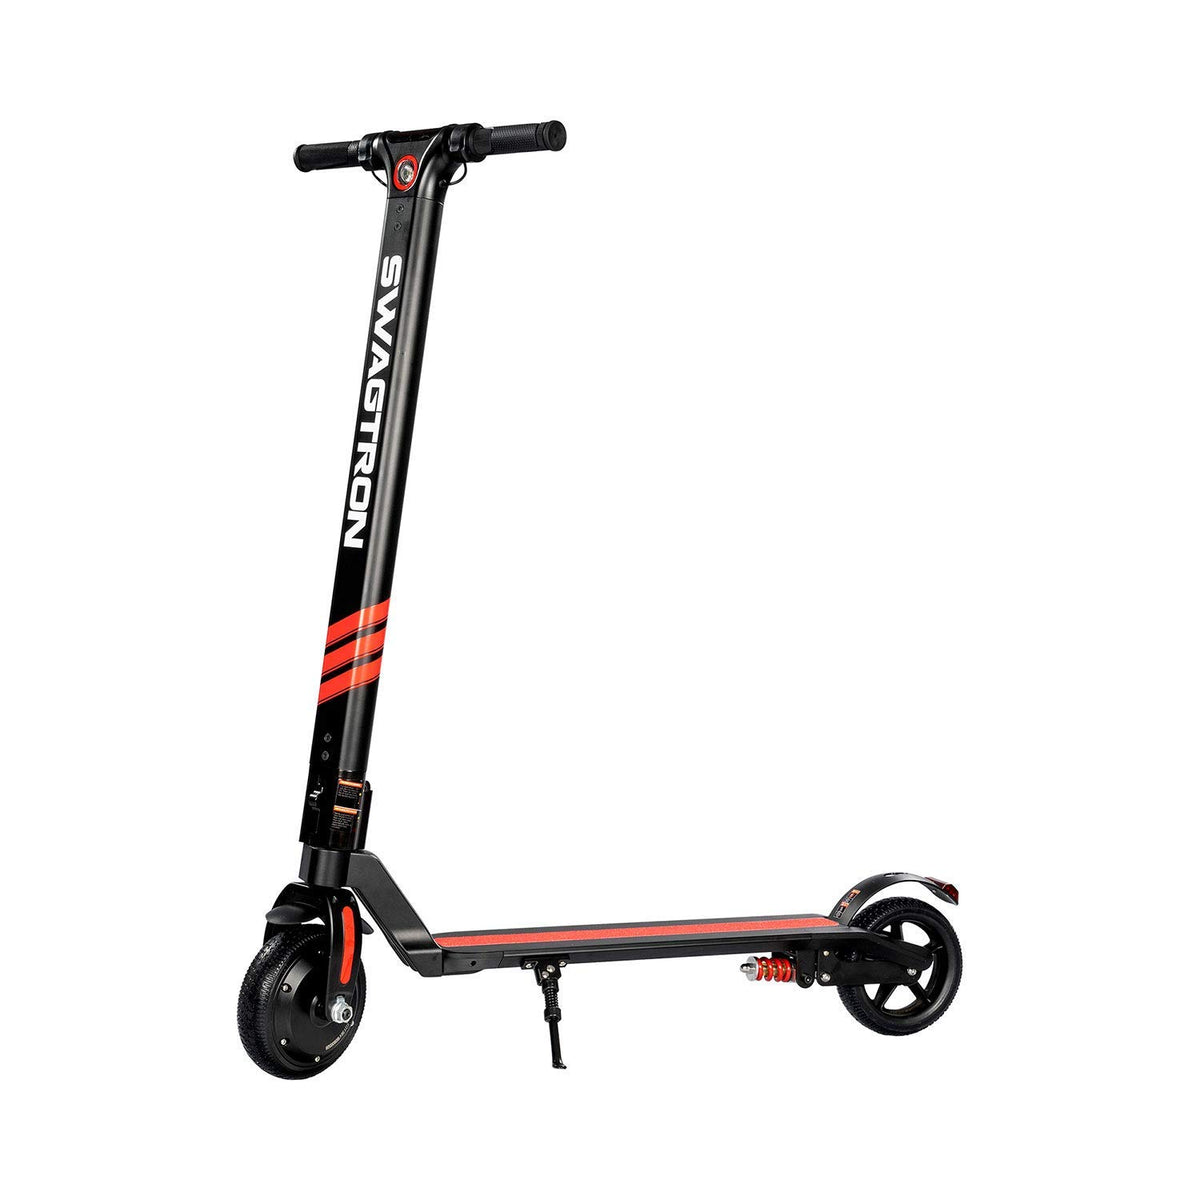 SWAGTRON Swagger PRO SG3 Folding Electric Sport Scooter